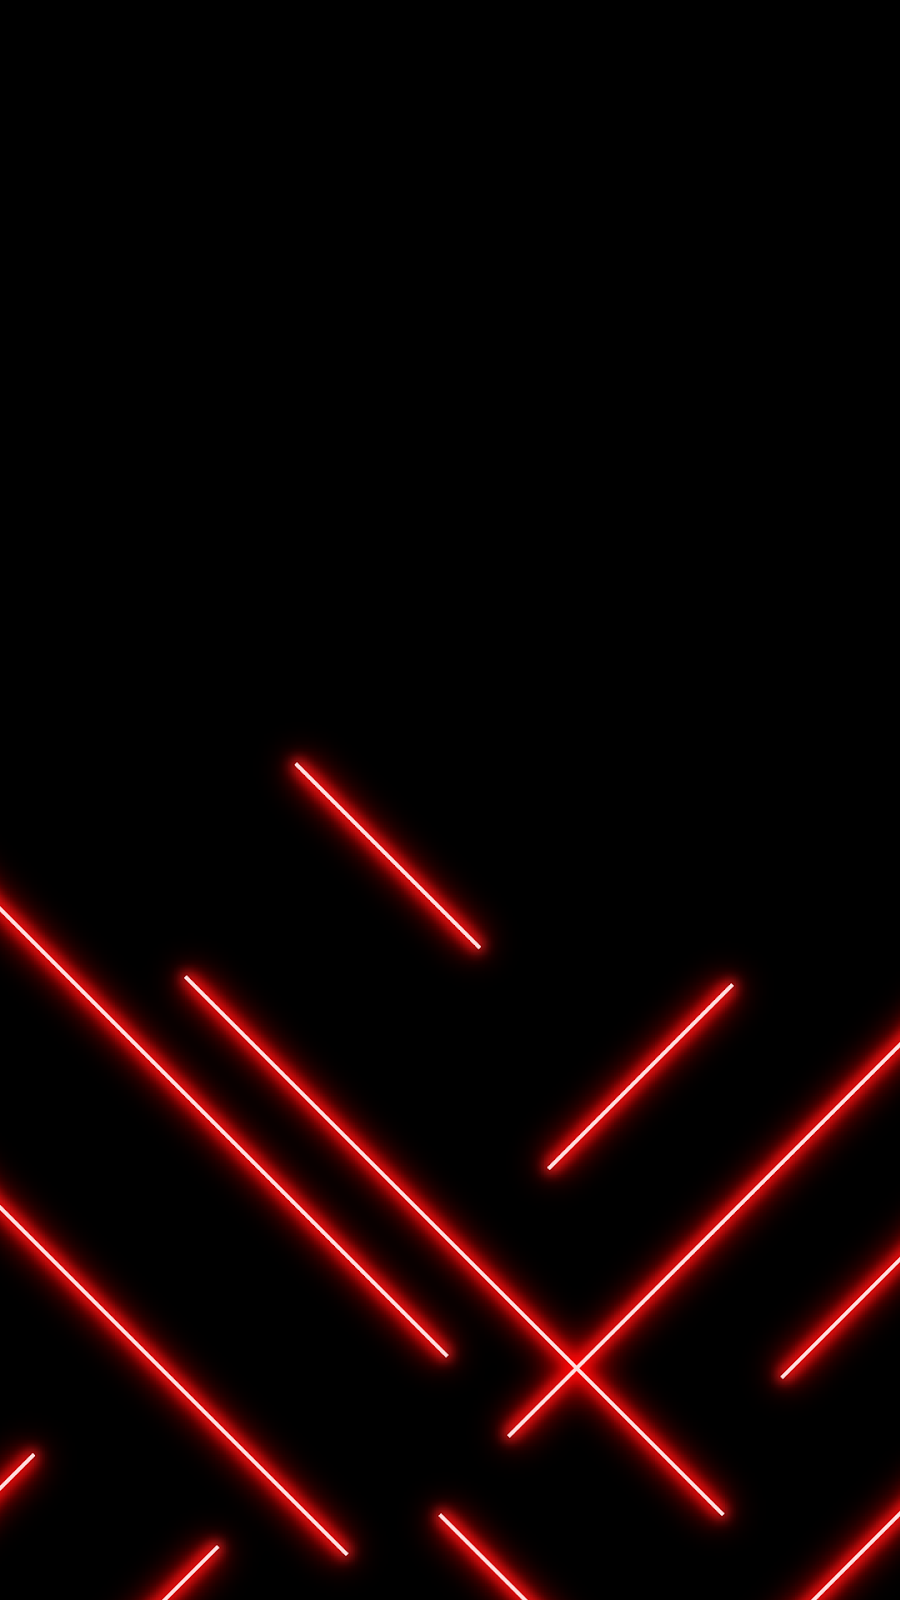 9 Cool Amoled Wallpapers Cool Wallpapers Heroscreen Cc Cool Wallpapers For Phones Phone Wallpaper Neon Wallpaper